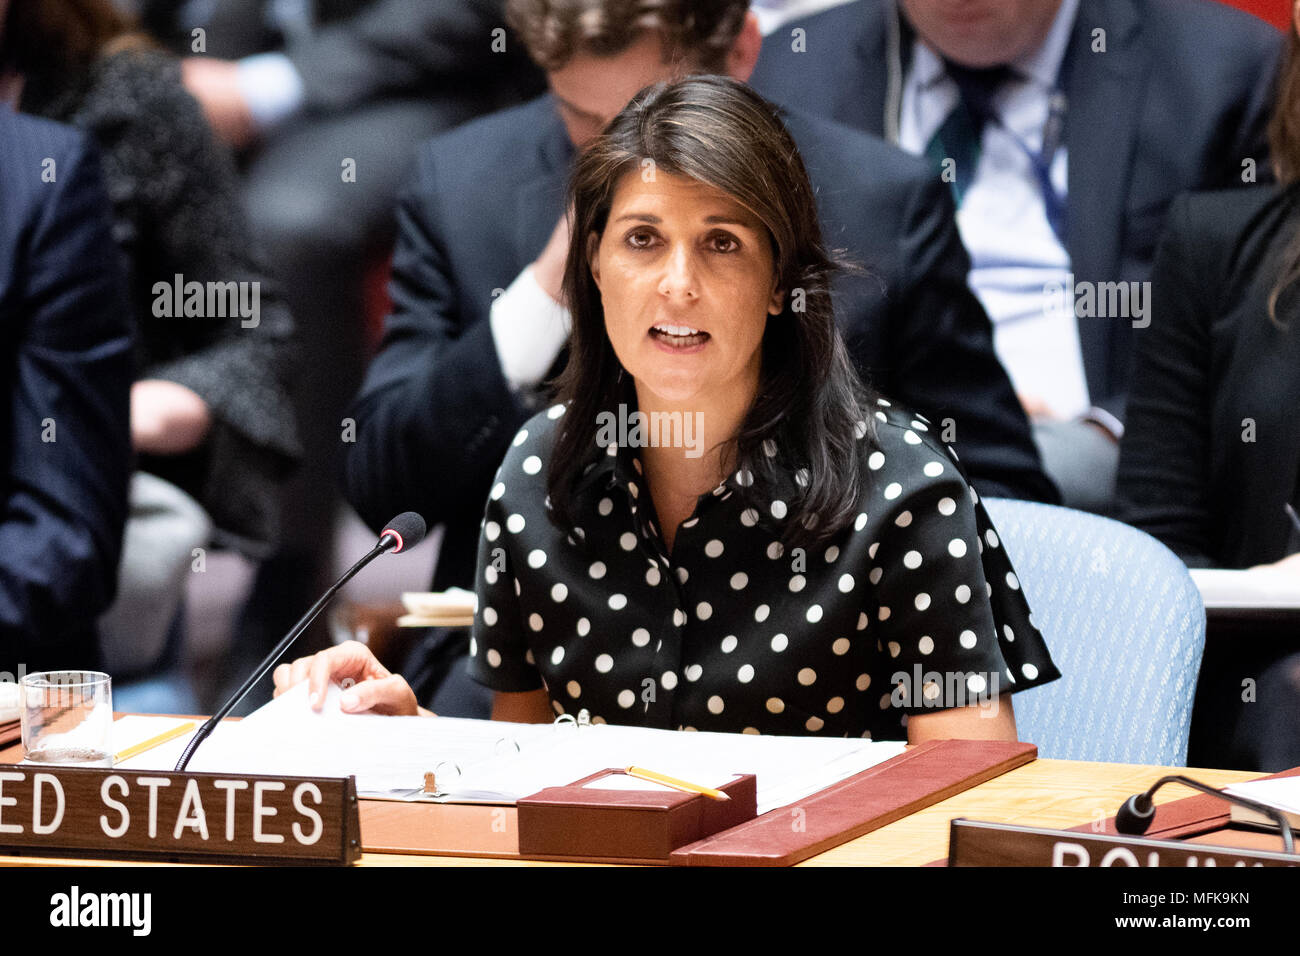 New York City, USA. 26th Apr, 2018. Nikki Haley, United States Ambassador to the United Nations, at the United Nations Security Council. Credit: SOPA Images Limited/Alamy Live News - Stock Image